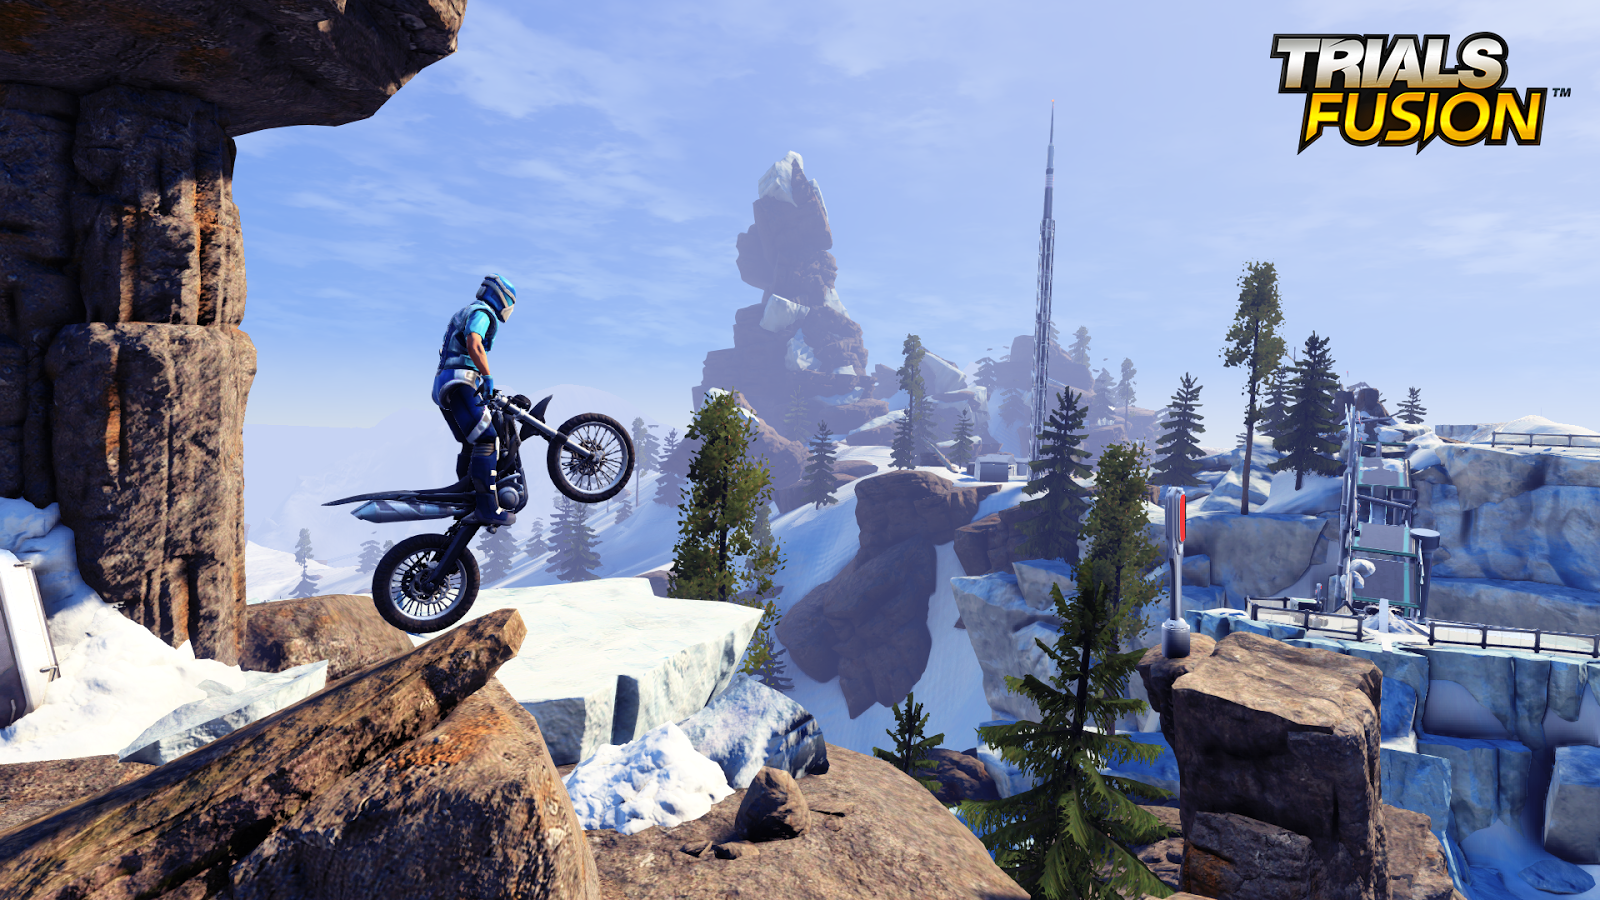 Trials Fusion is coming to PS4, PS3, Xbox 360 and Xbox One on April 16th.